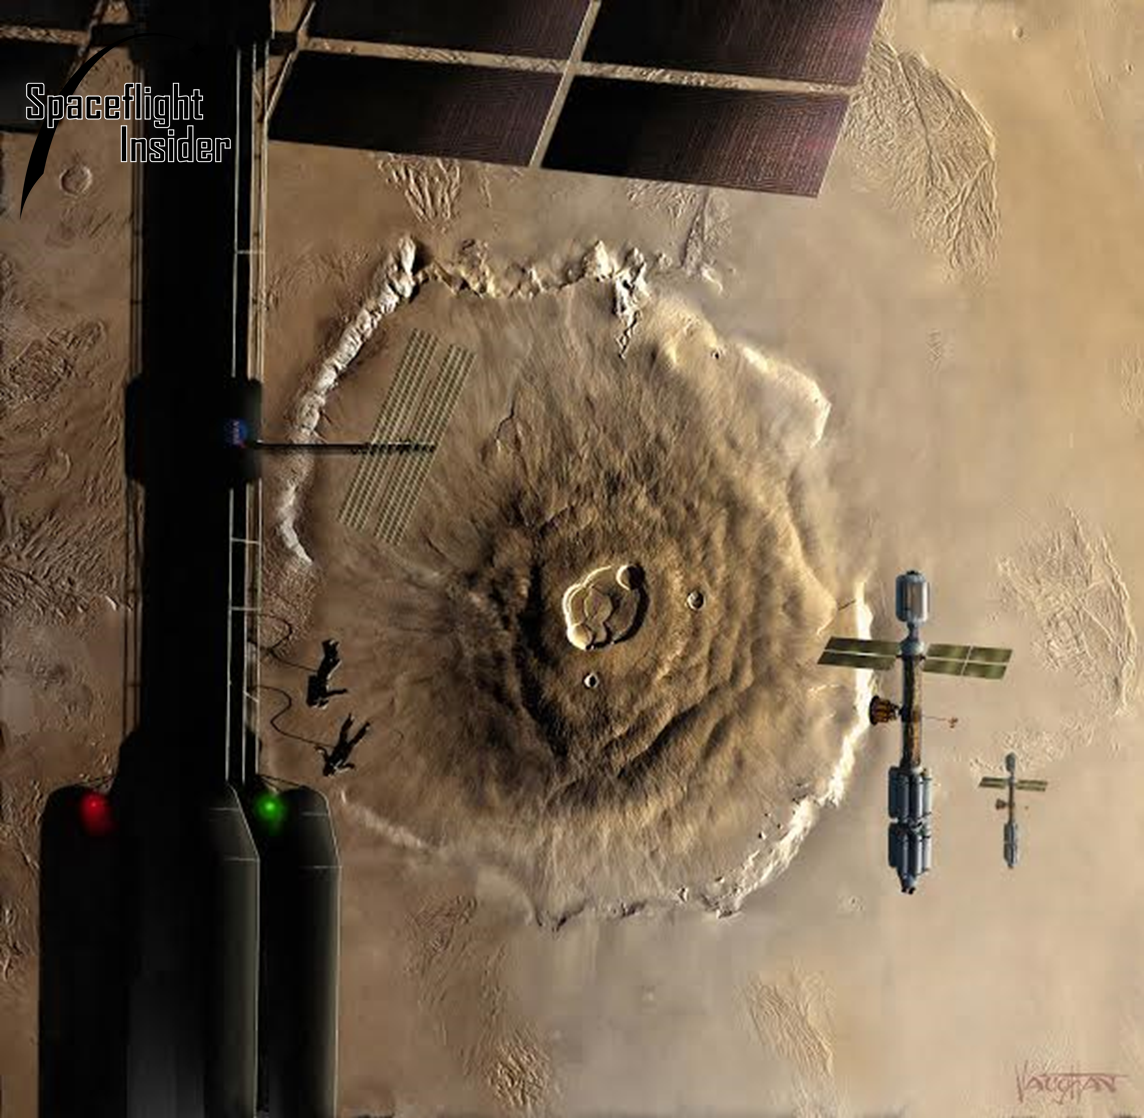 SpaceX: Crewed spacecraft in orbit above the Red Planet